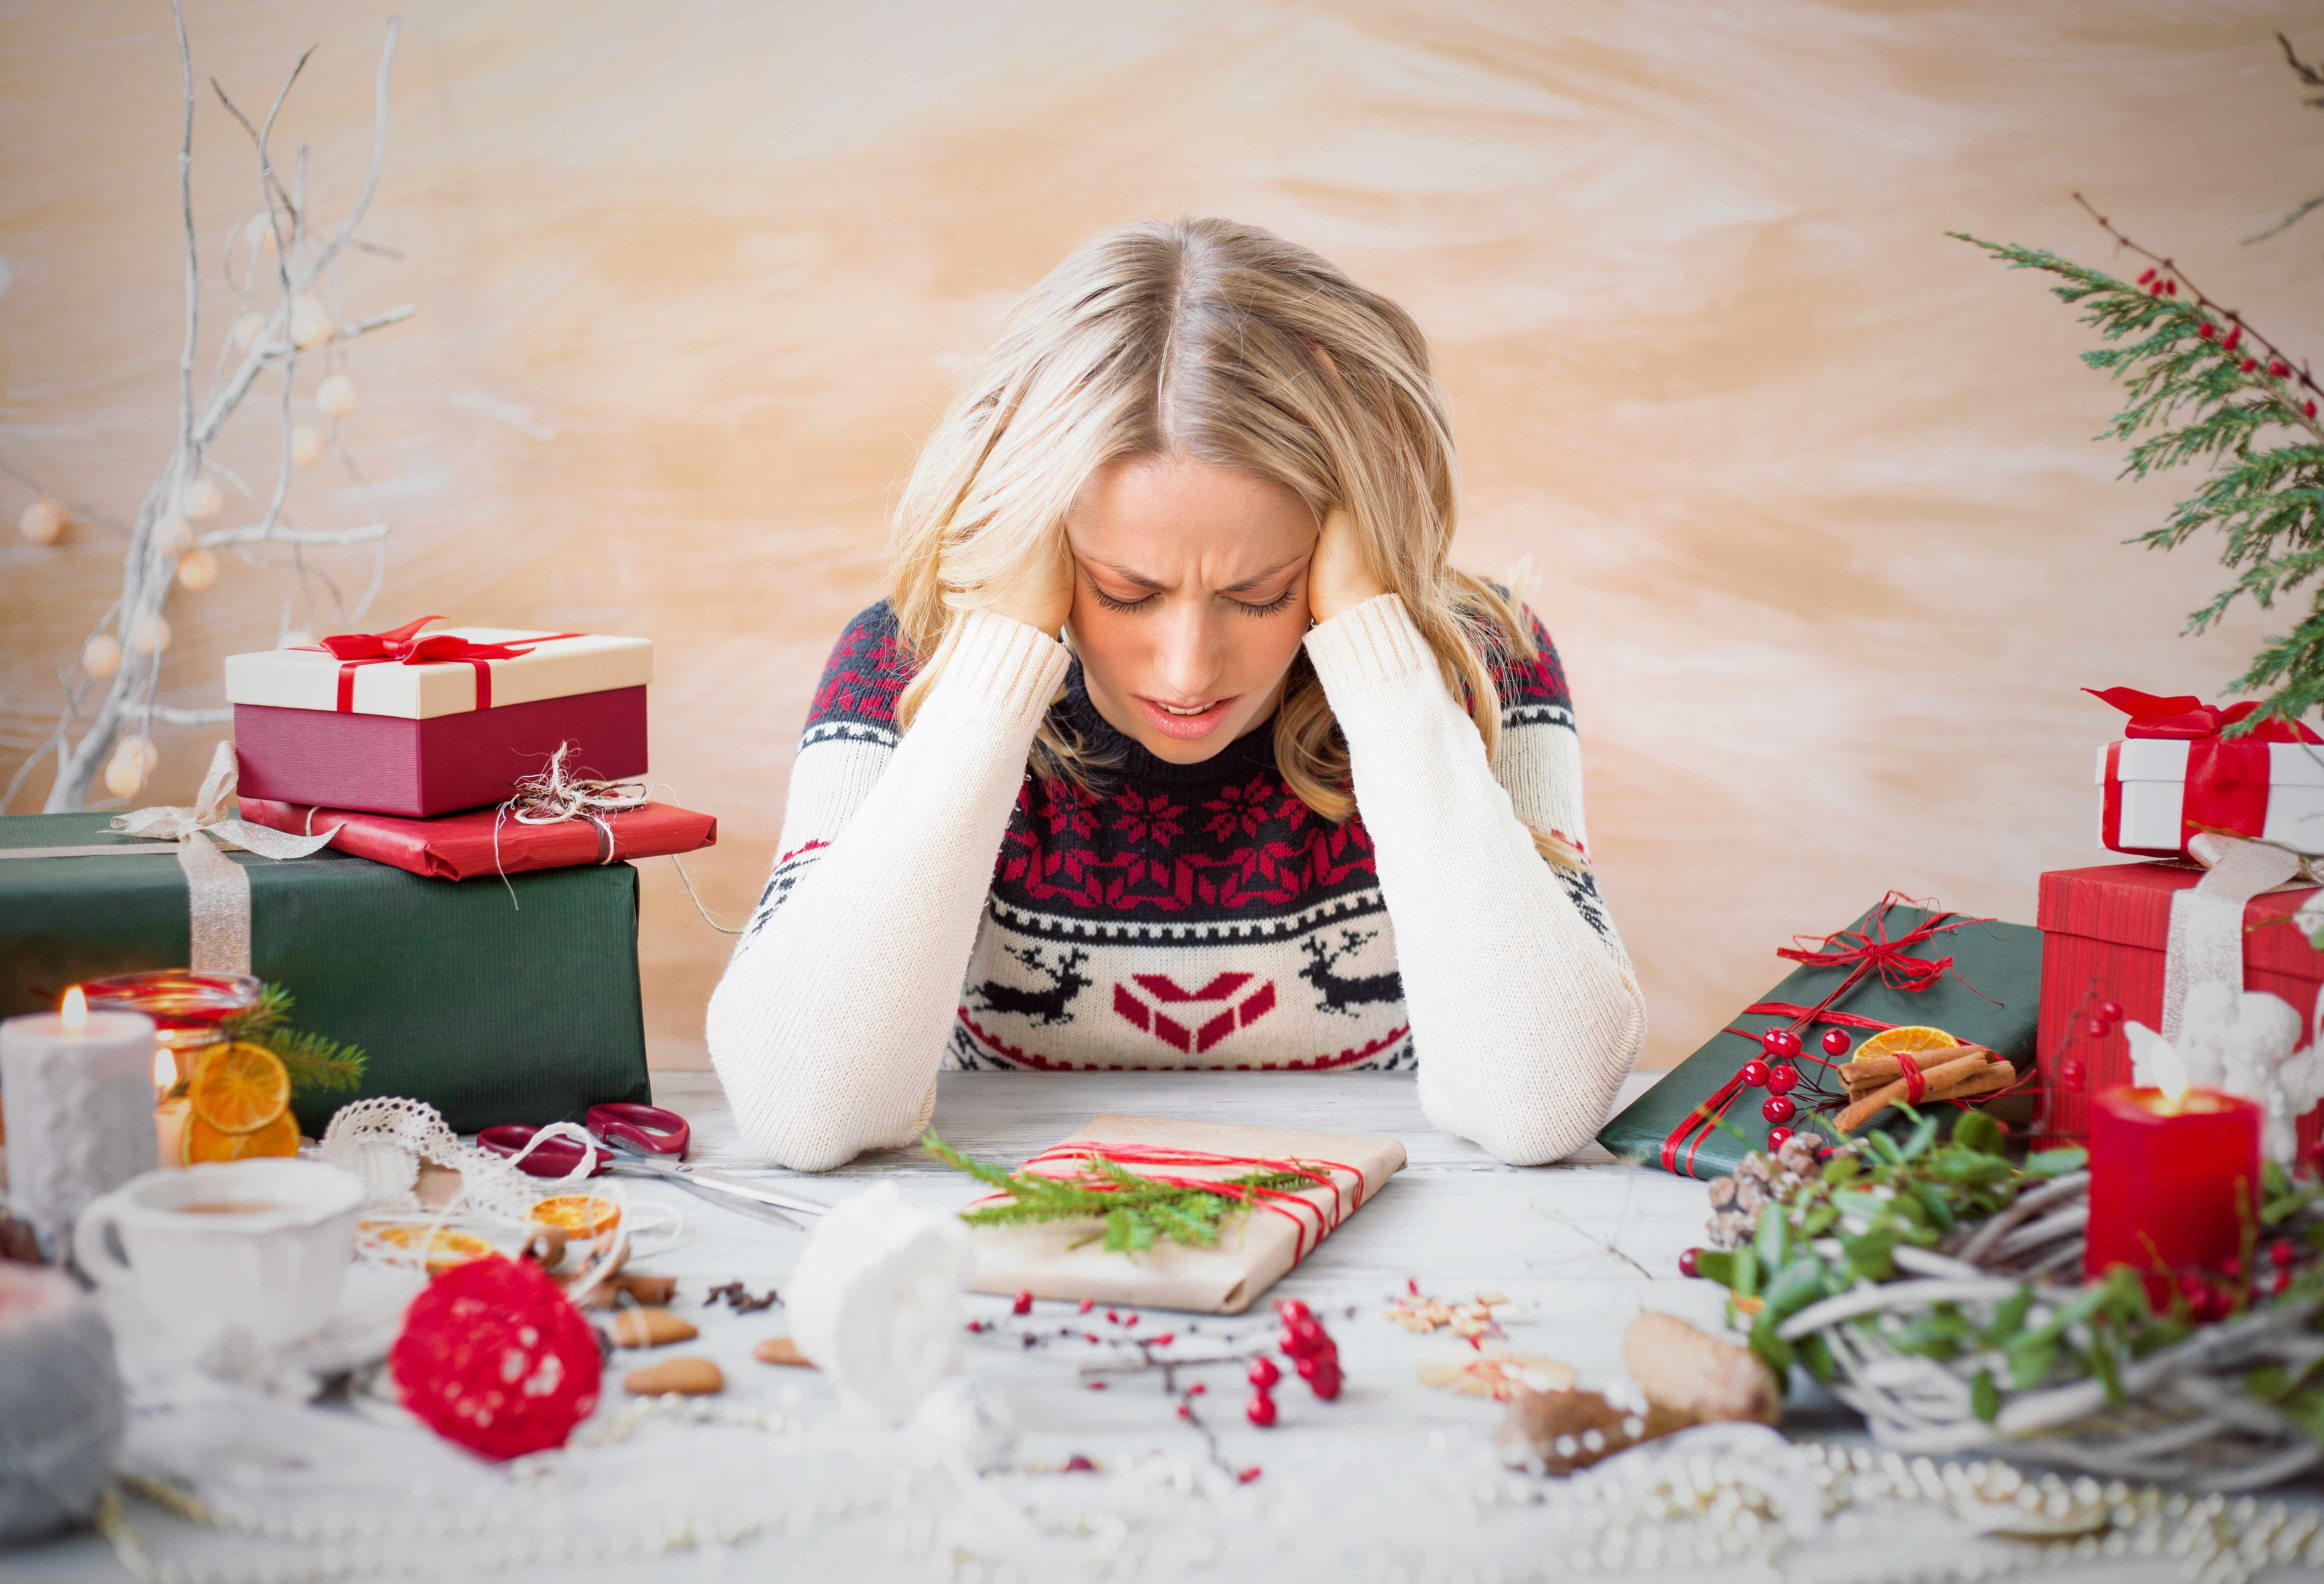 a woman tired and stressed, holding her head in her hands with presents and wrapping paper everywhere